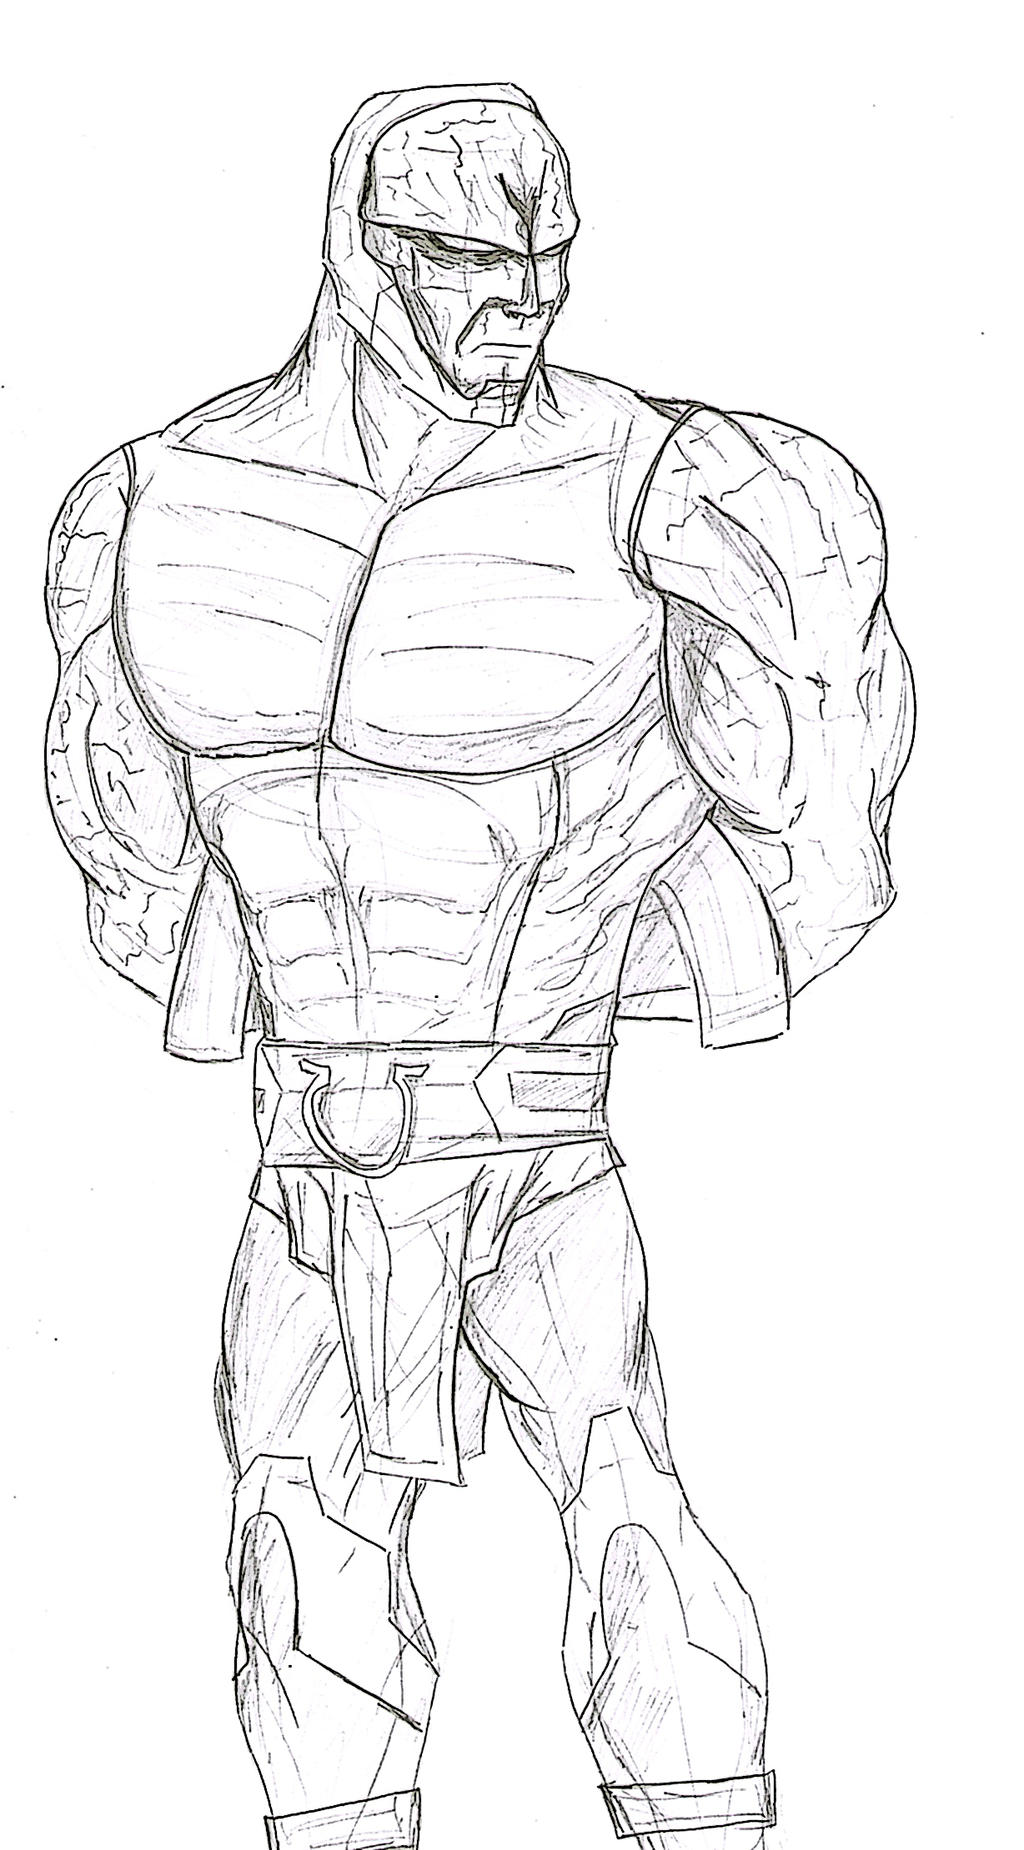 darkseid pencils by soyelmejor999 on deviantart